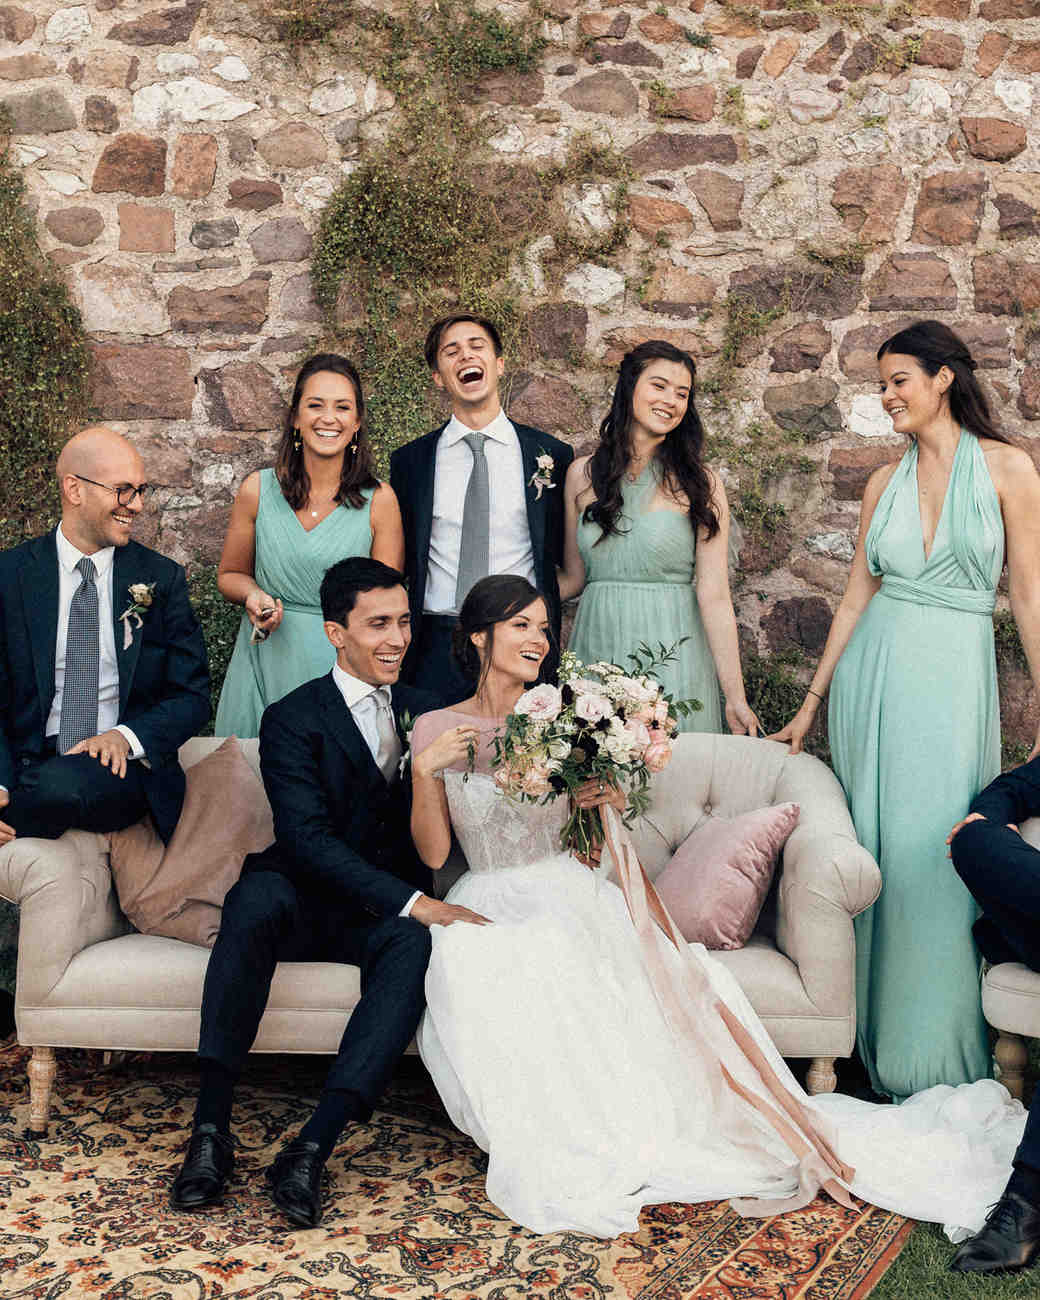 natalie paul wedding party on couch